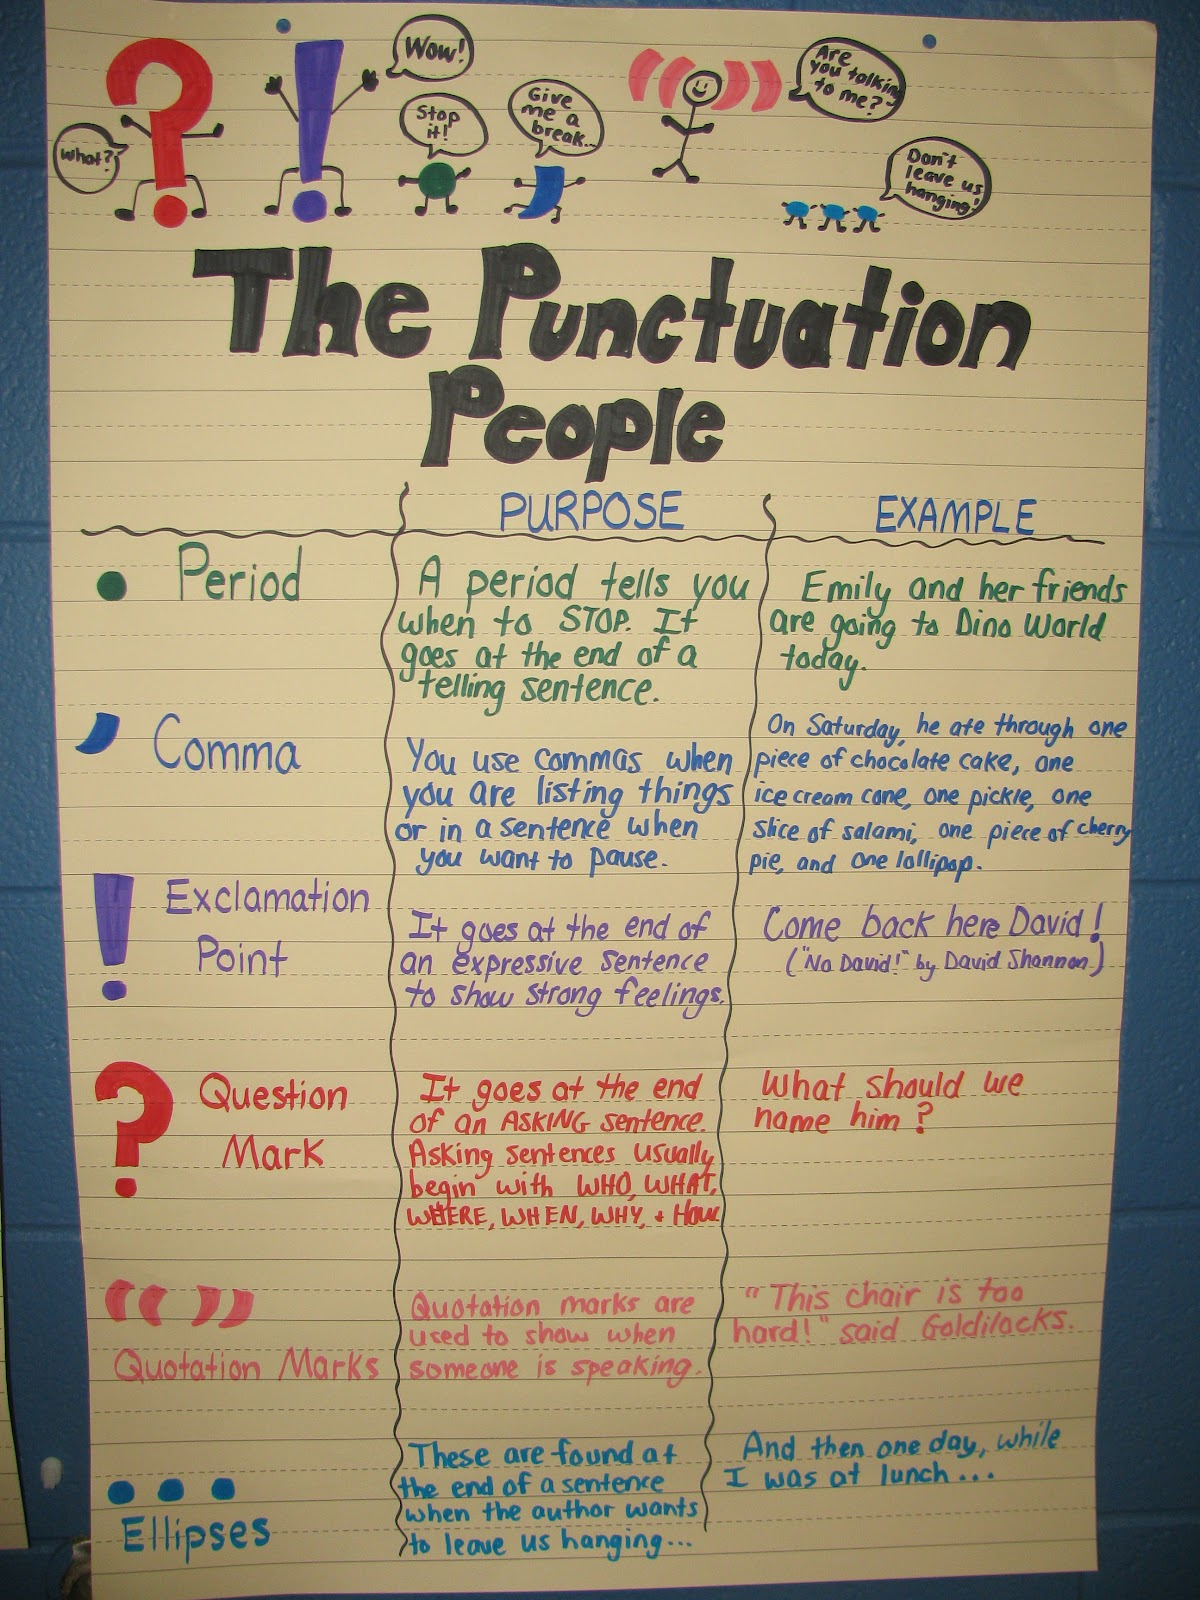 Bulleted Lists: Capitalization and Punctuation